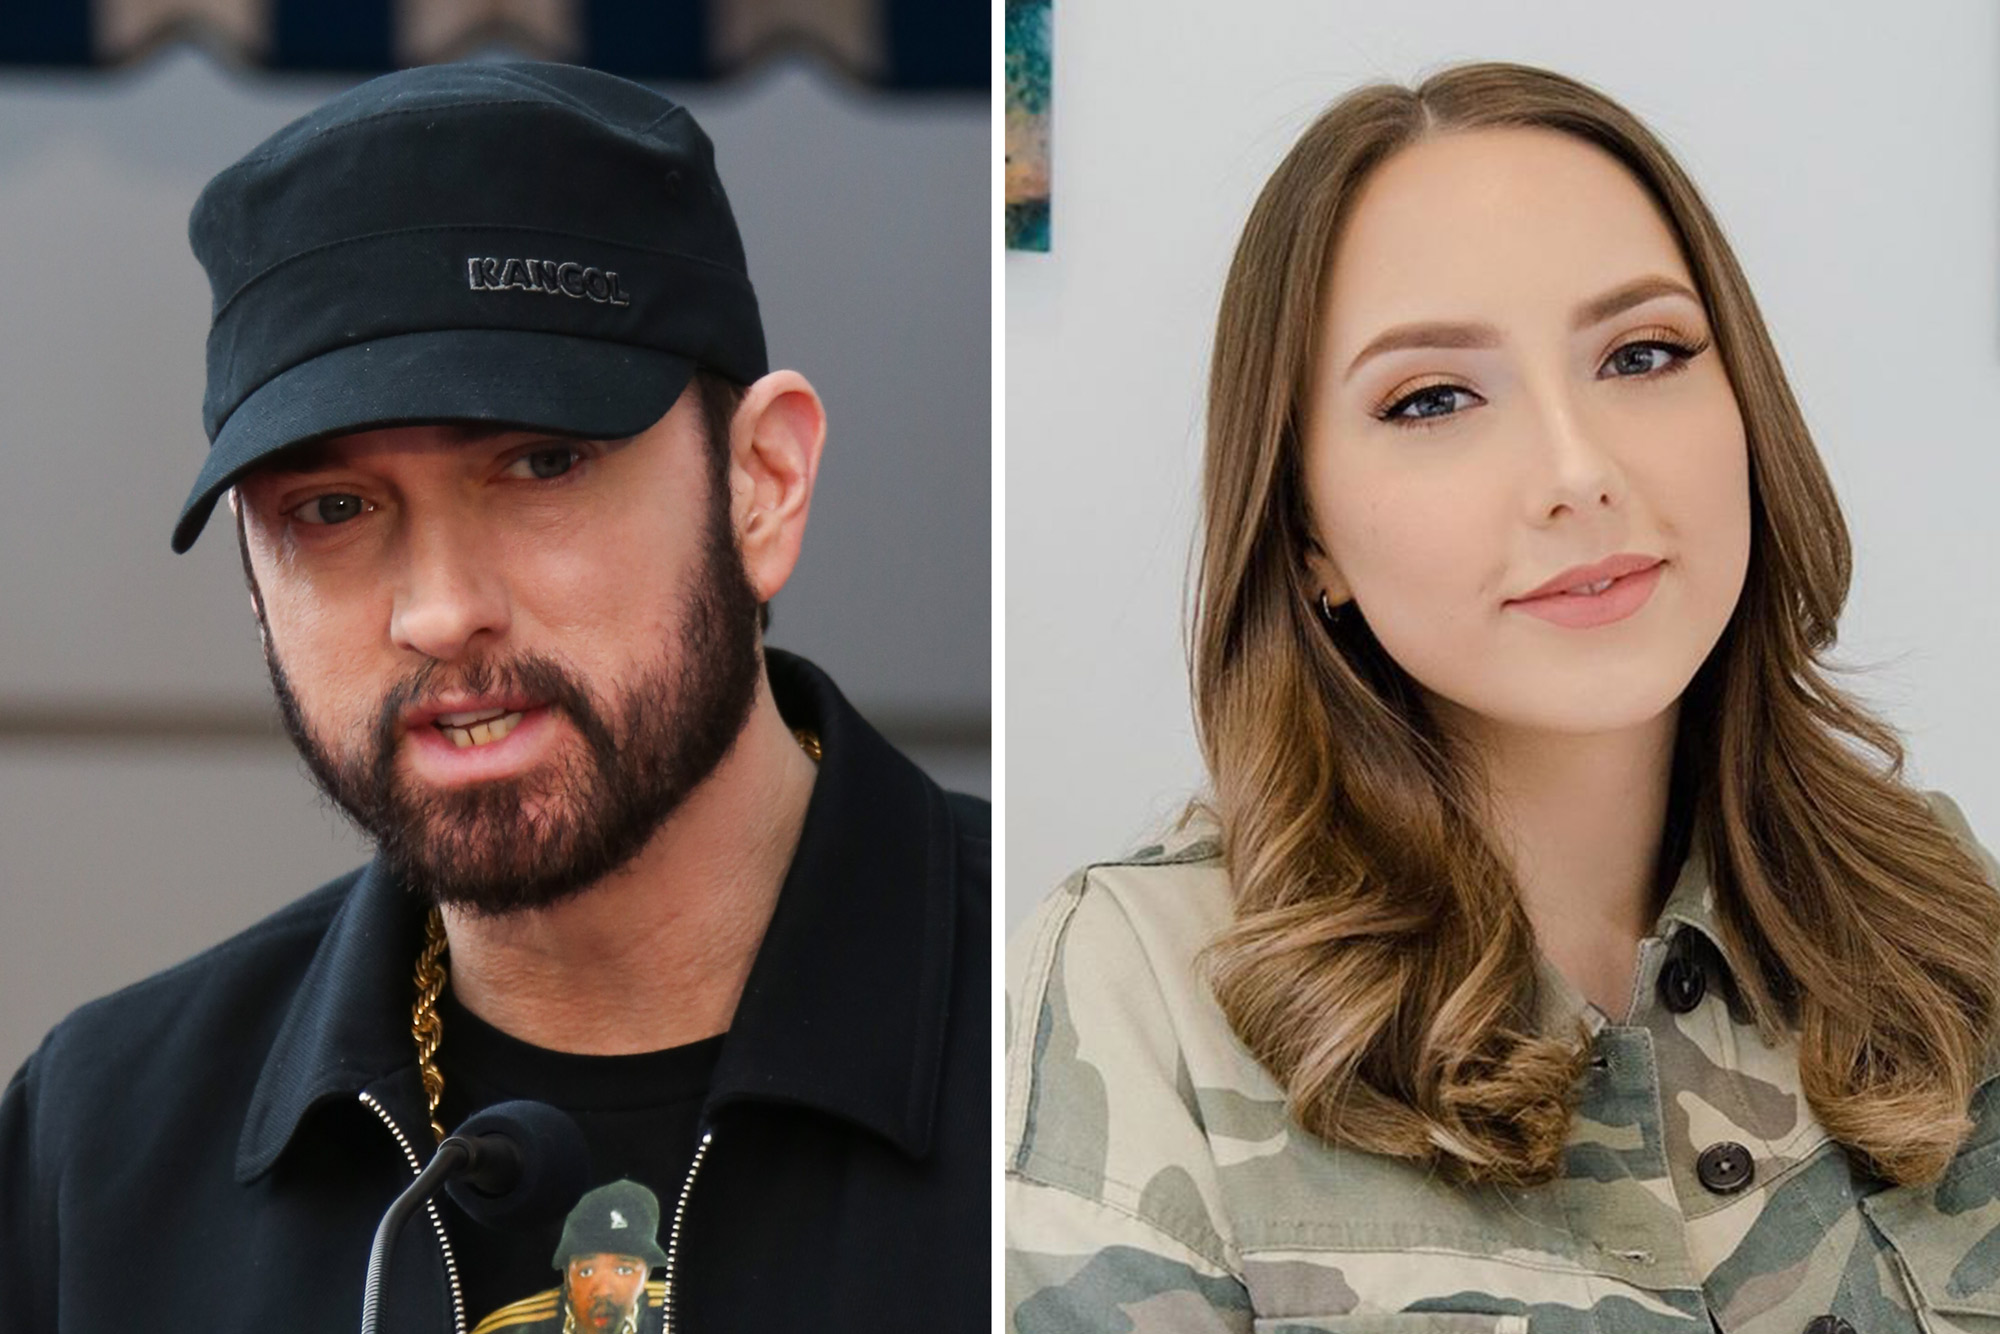 eminems-daughter-hailie-posts-hilarious-first-tiktok-video-after-joining-the-app